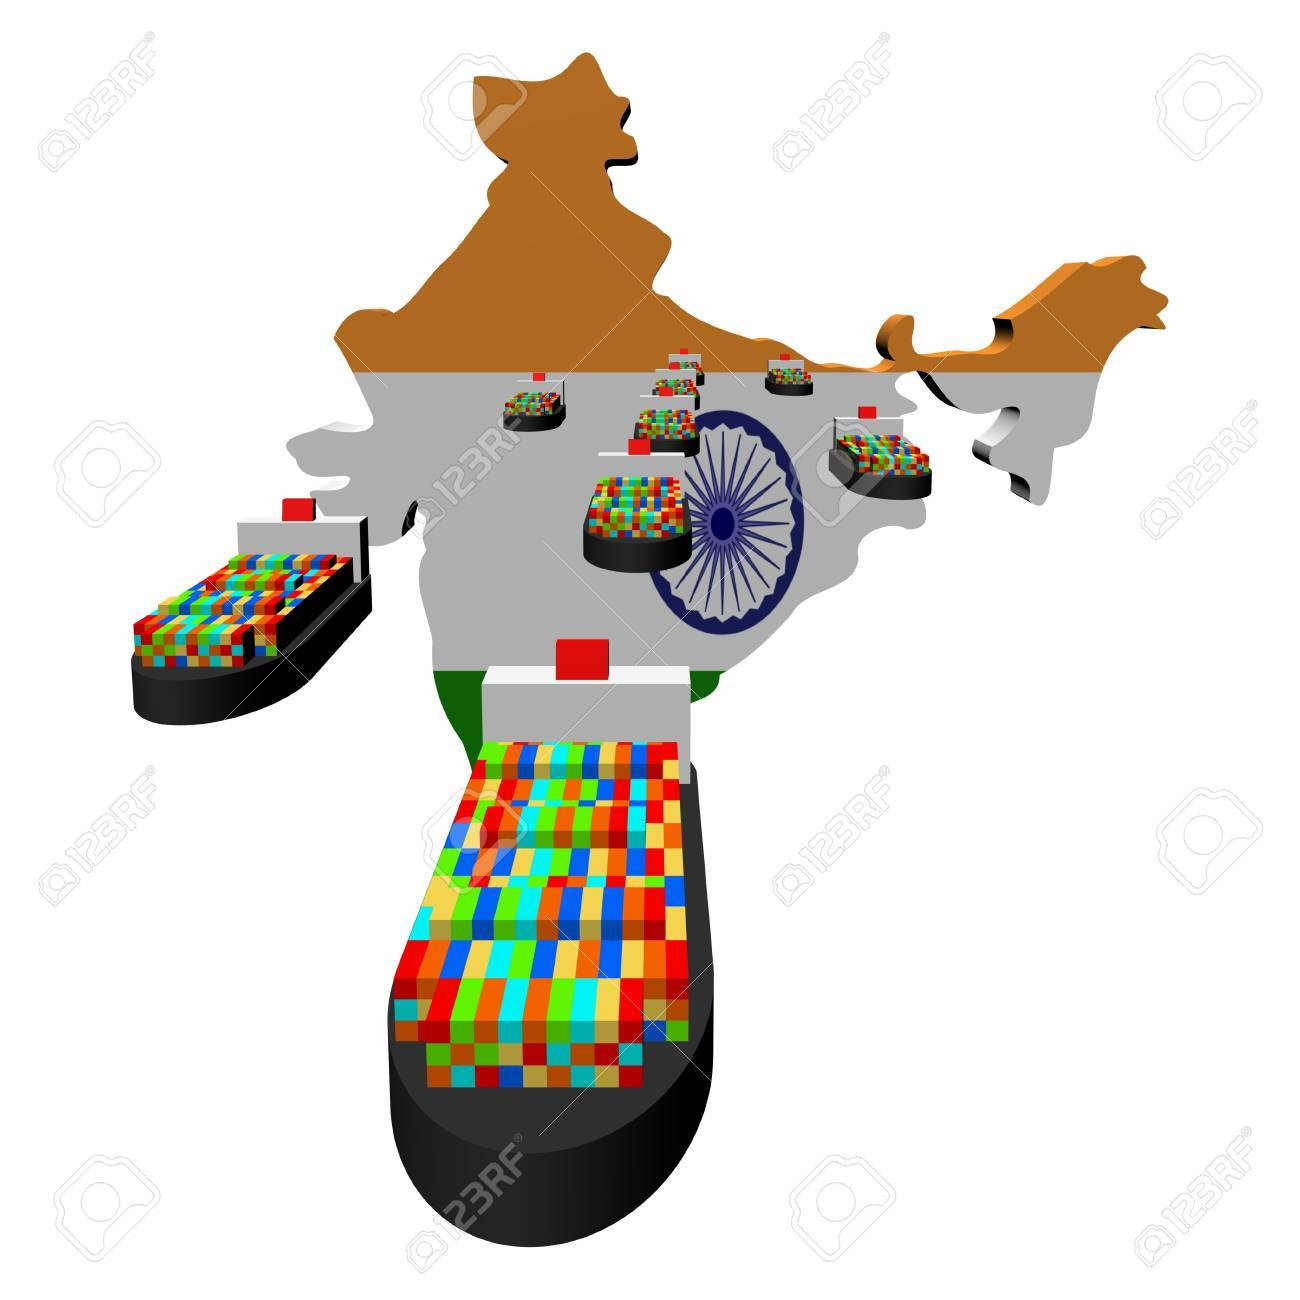 India Map Flag.India Map Flag With Container Ships Illustration Stock Photo